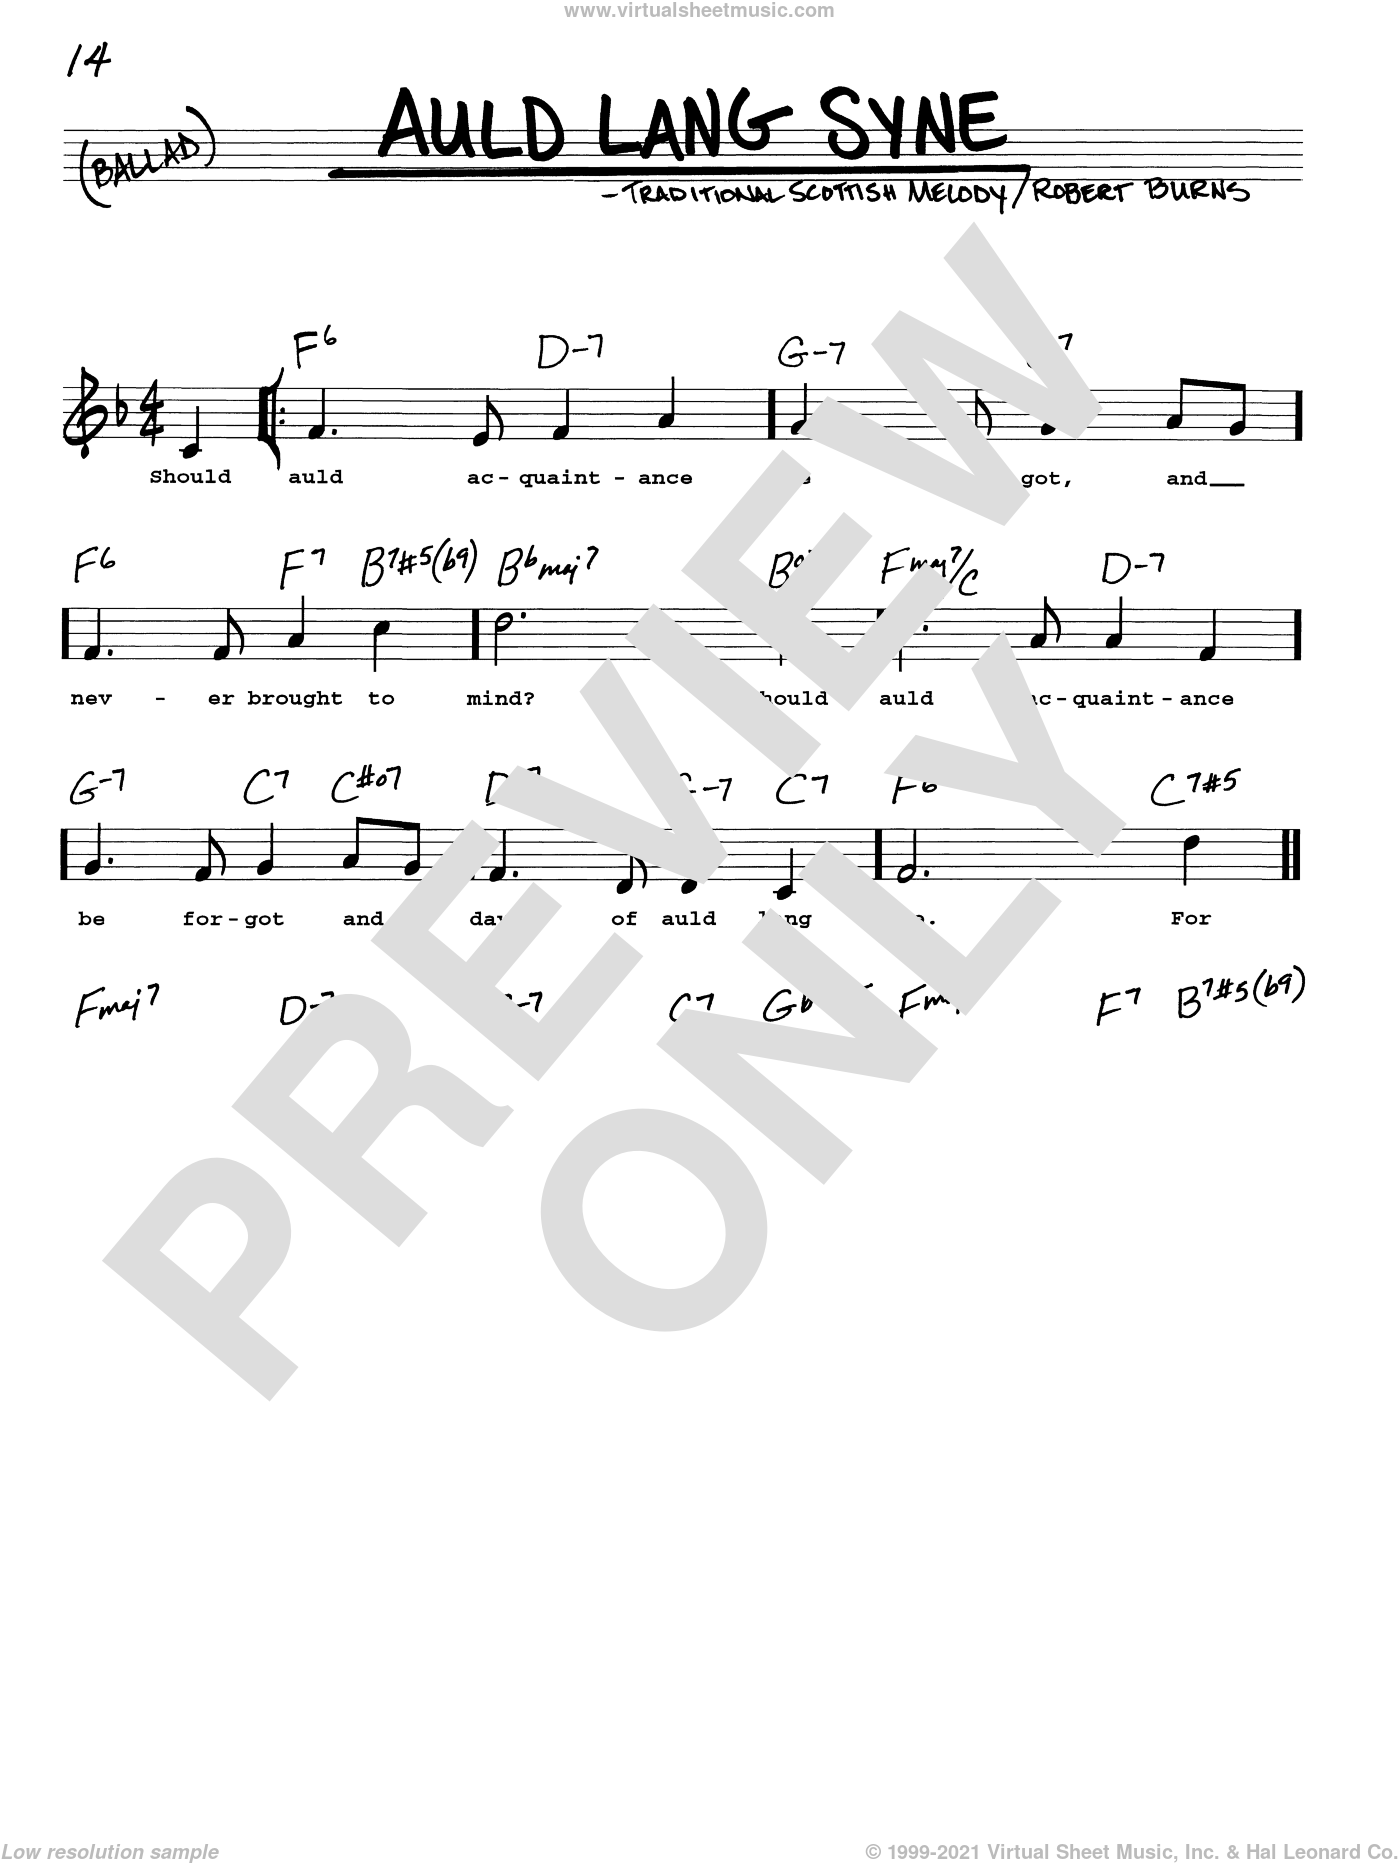 Auld Lang Syne sheet music for voice and other instruments (real book with lyrics) by Traditional Scottish Melody and Robert Burns, intermediate skill level